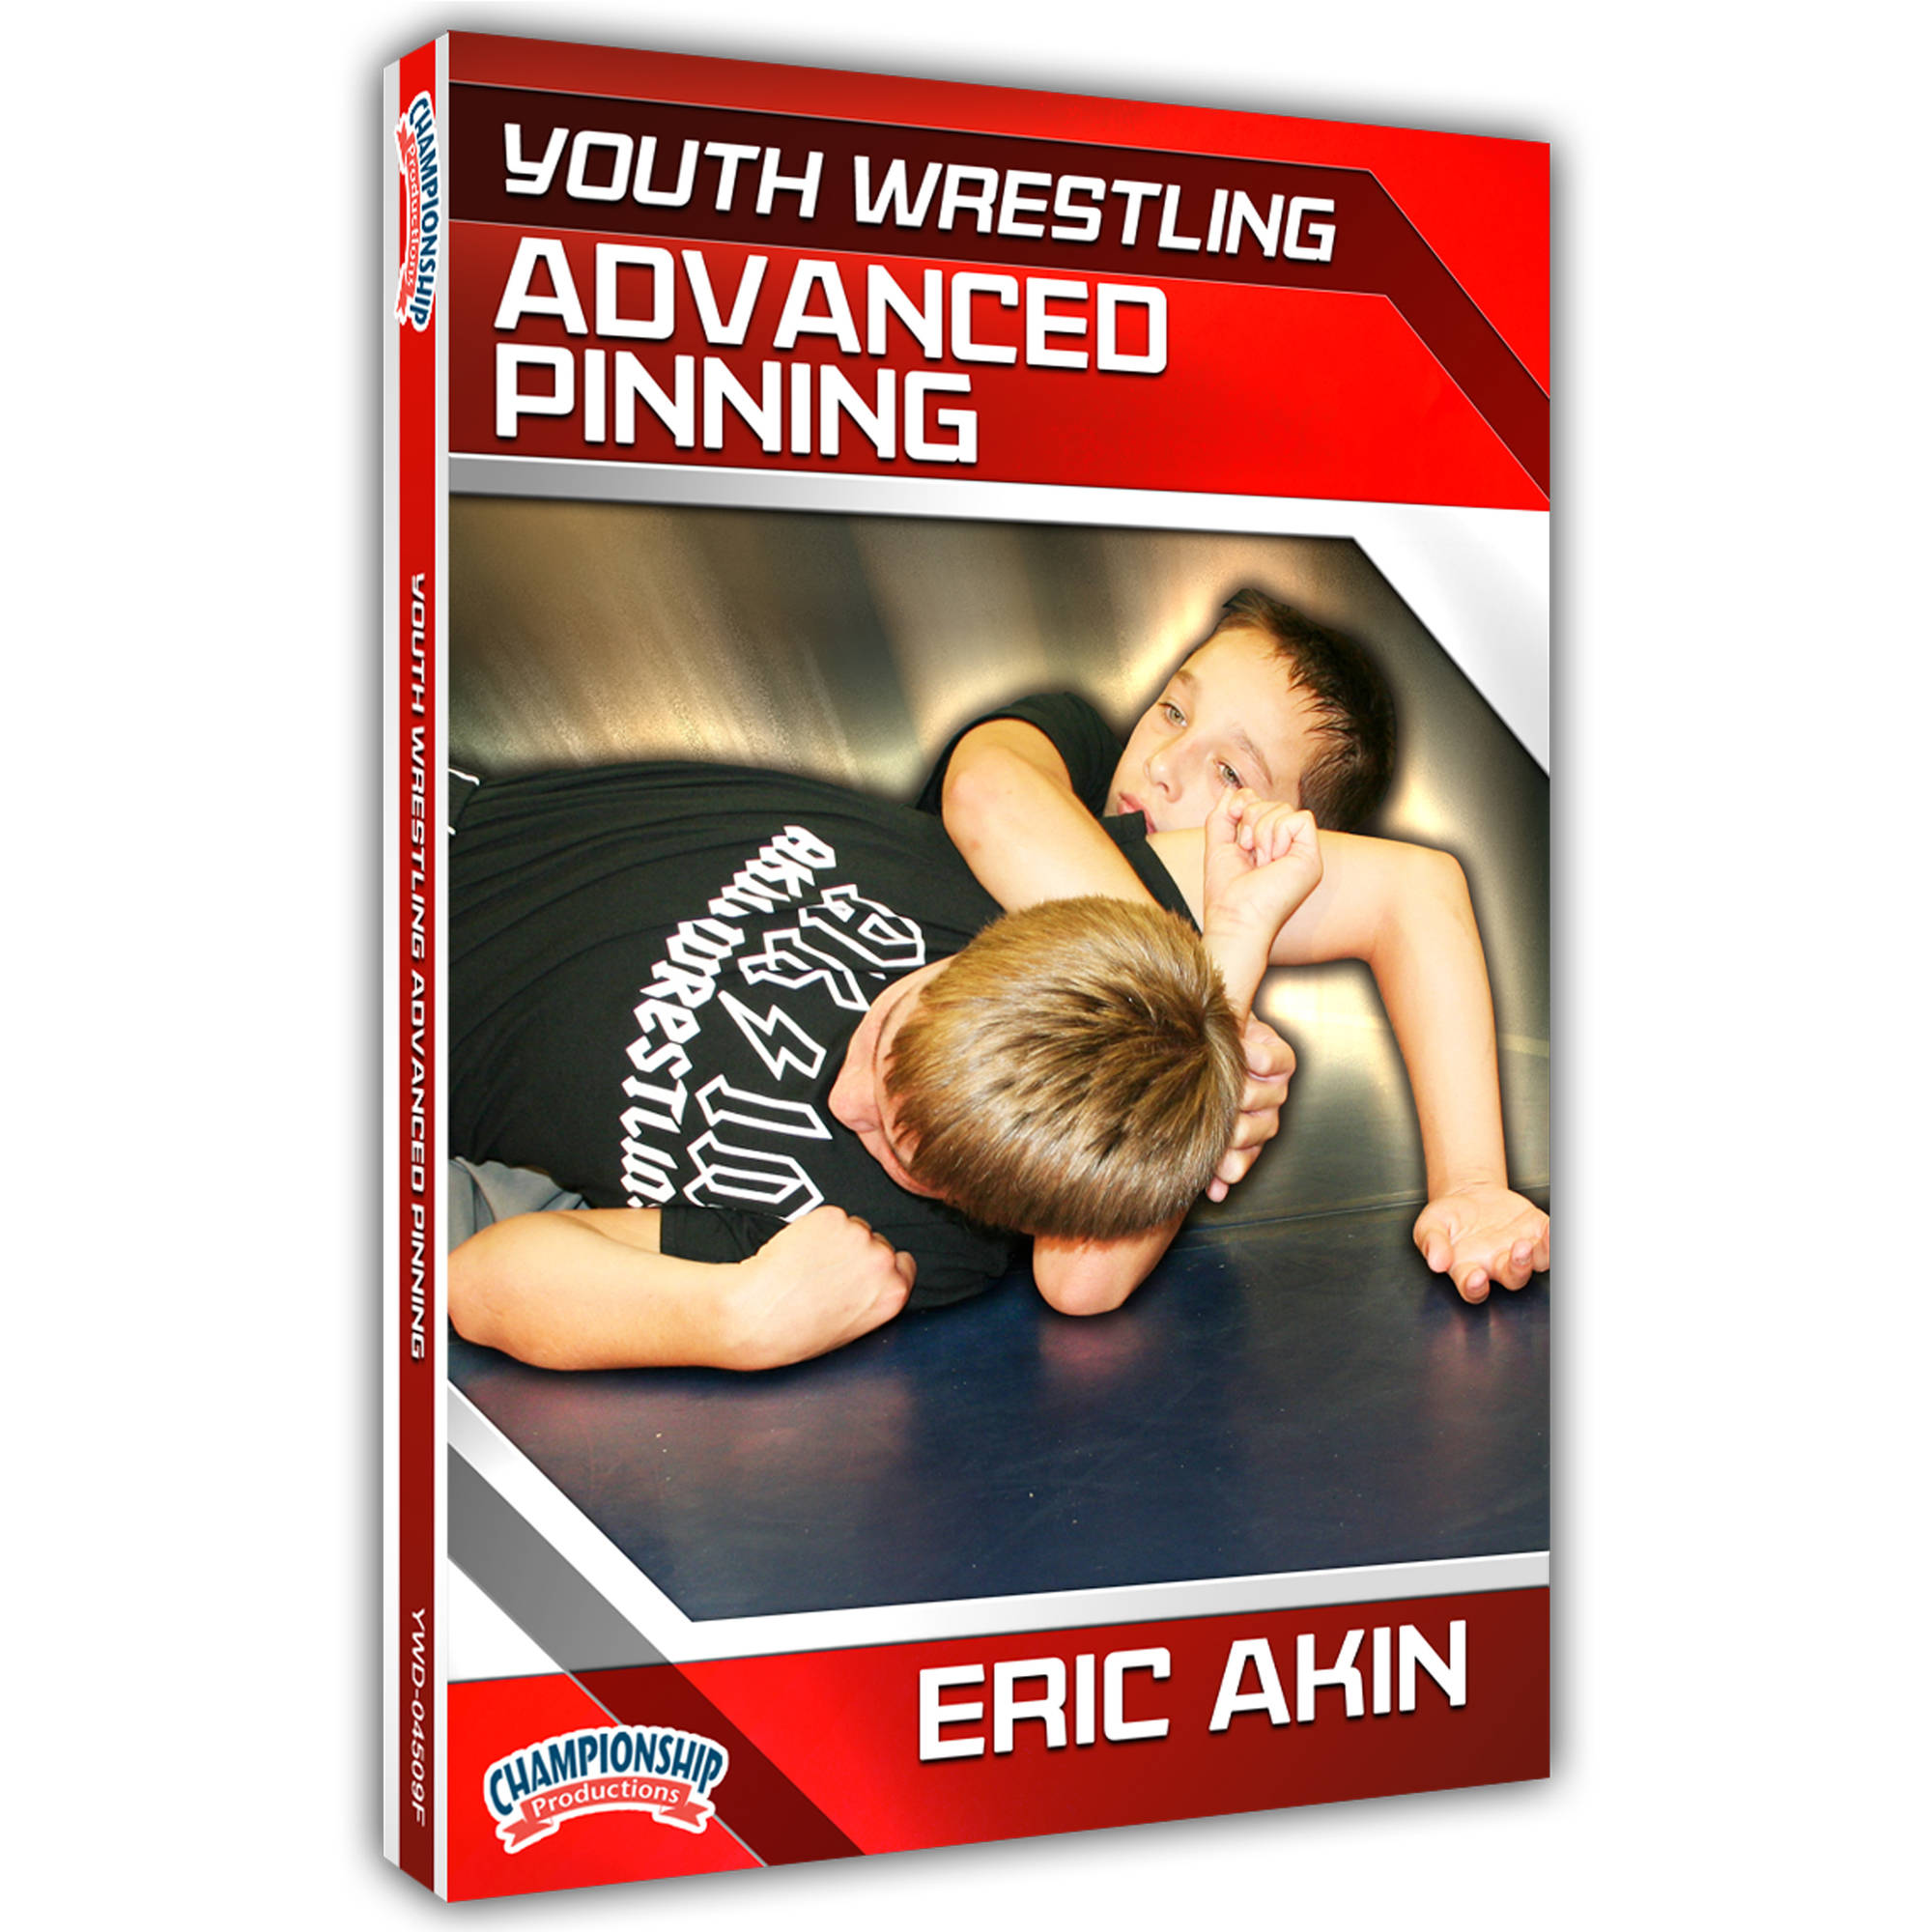 Youth Wrestling: Advanced Pinning DVD